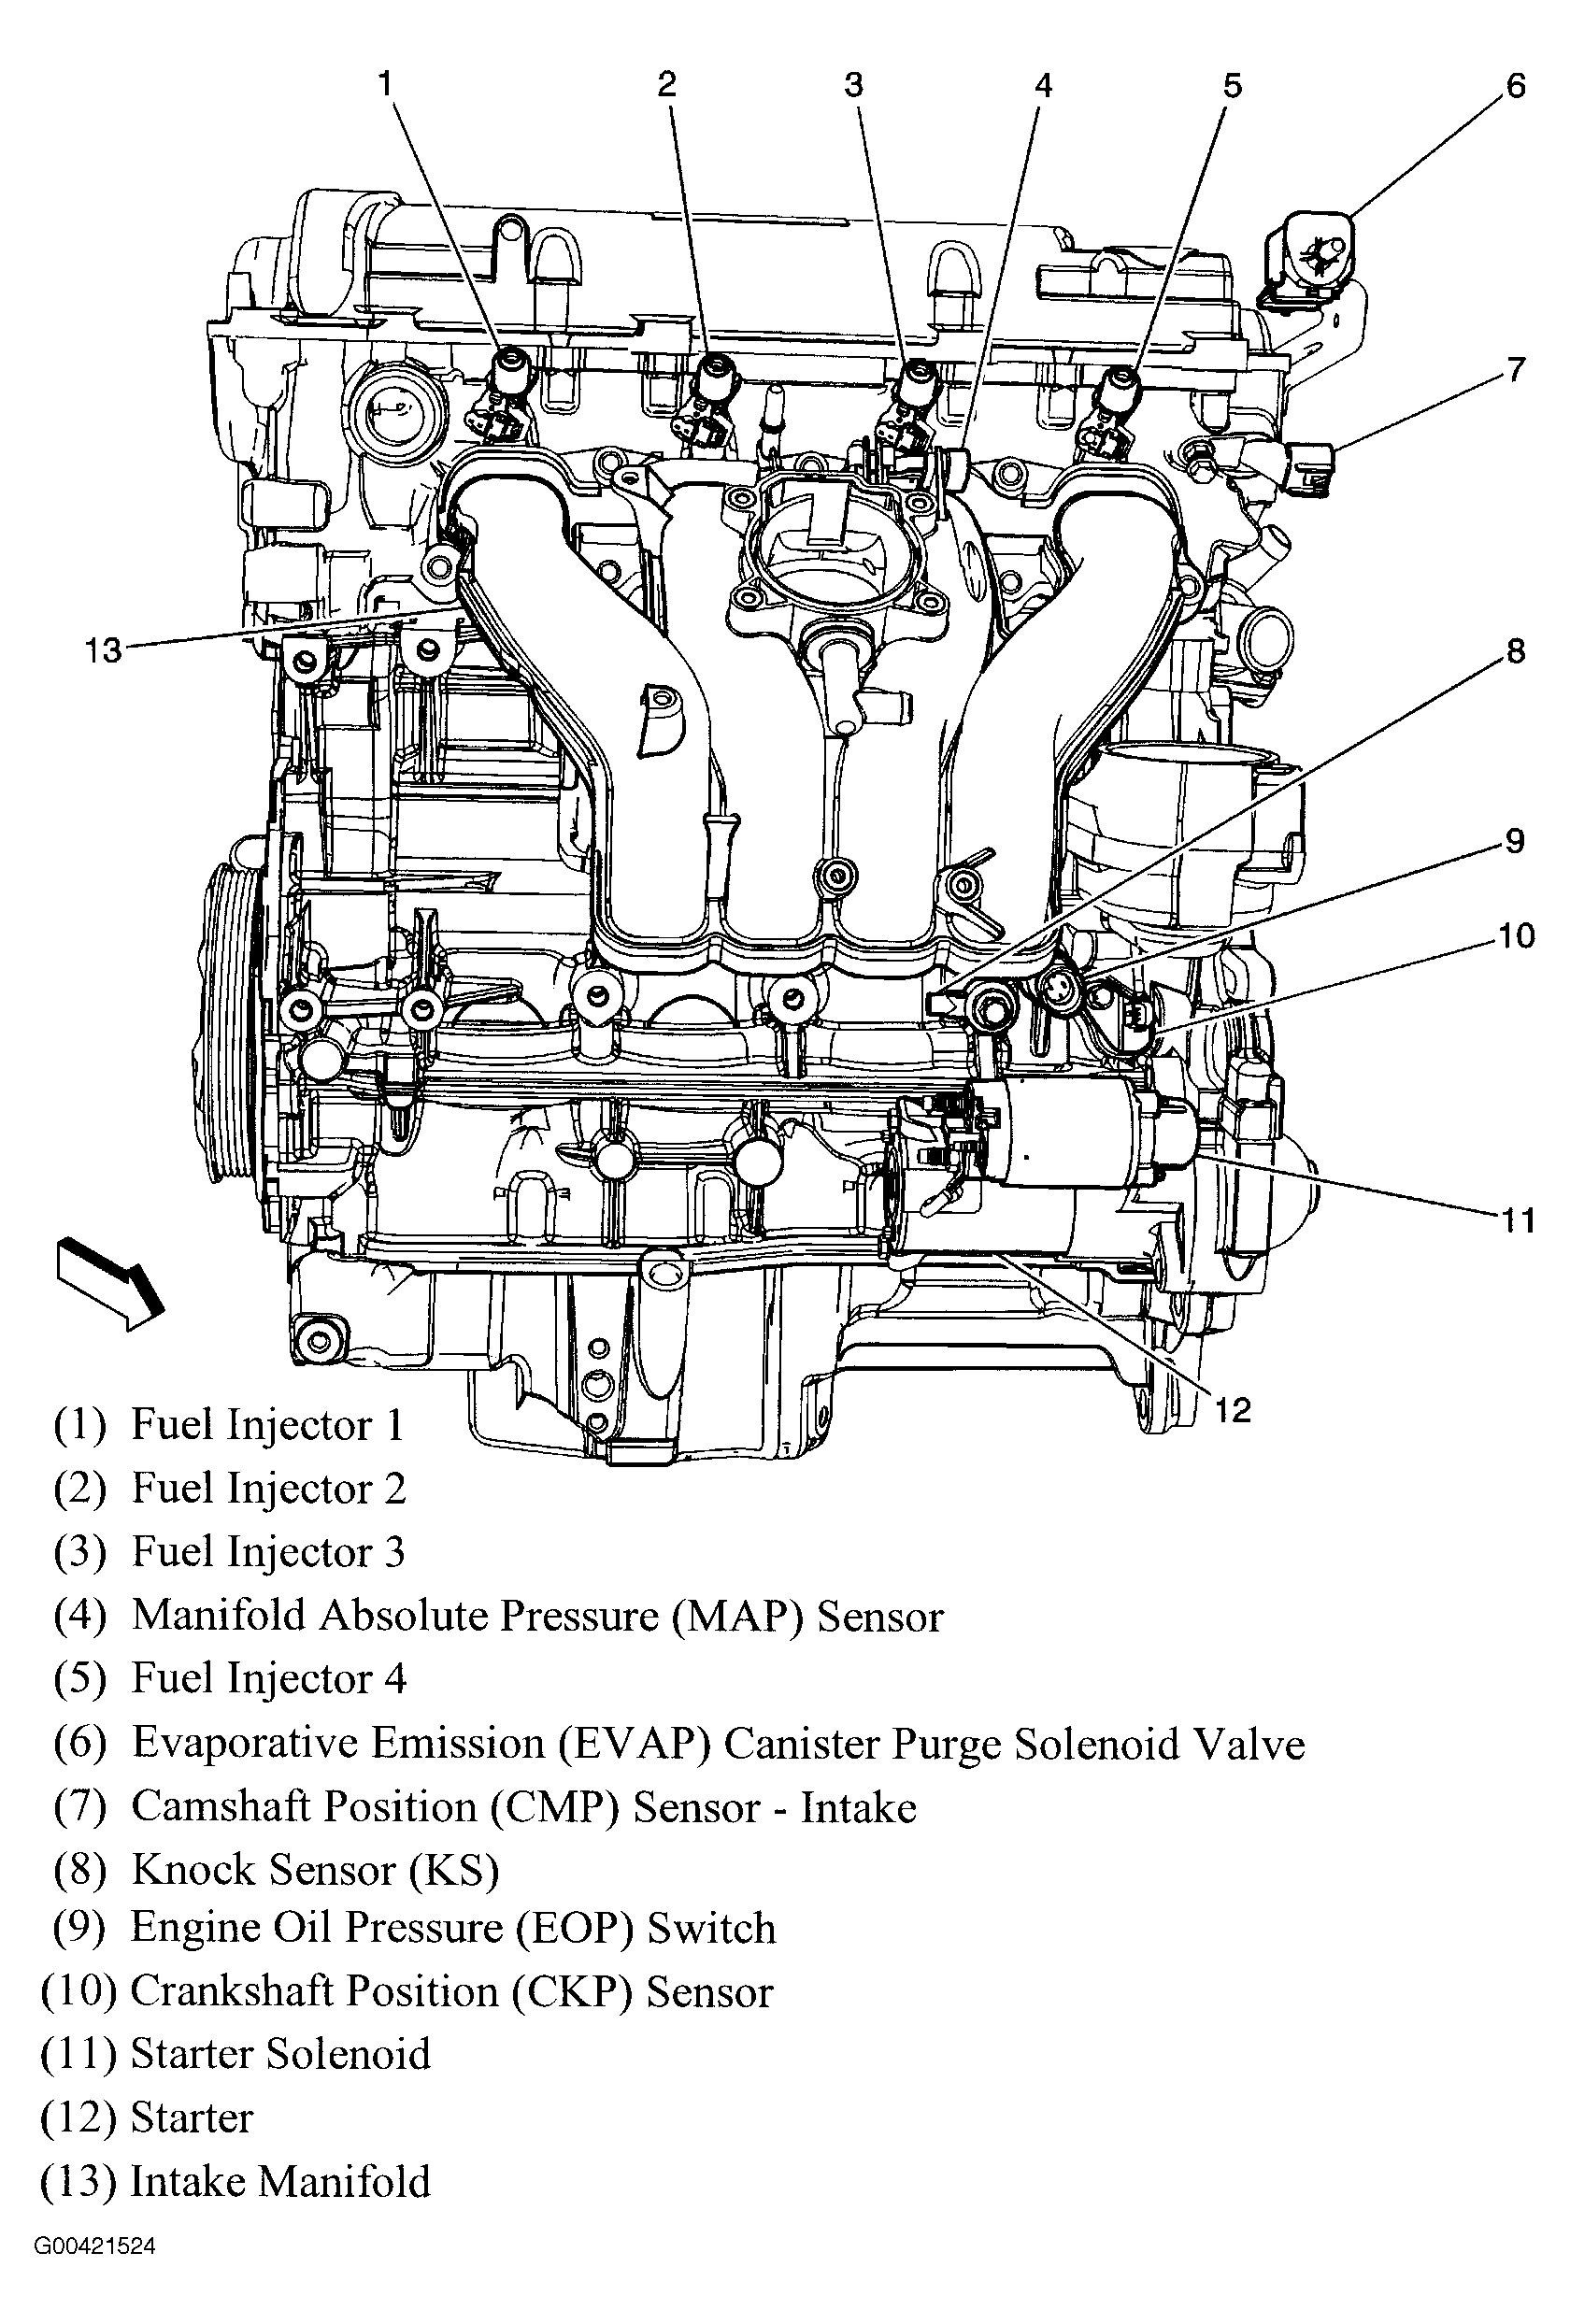 Basic Car Engine Parts Diagram Chevy S10 2 Engine Diagram Engine Car Parts and Ponent Diagram Of Basic Car Engine Parts Diagram